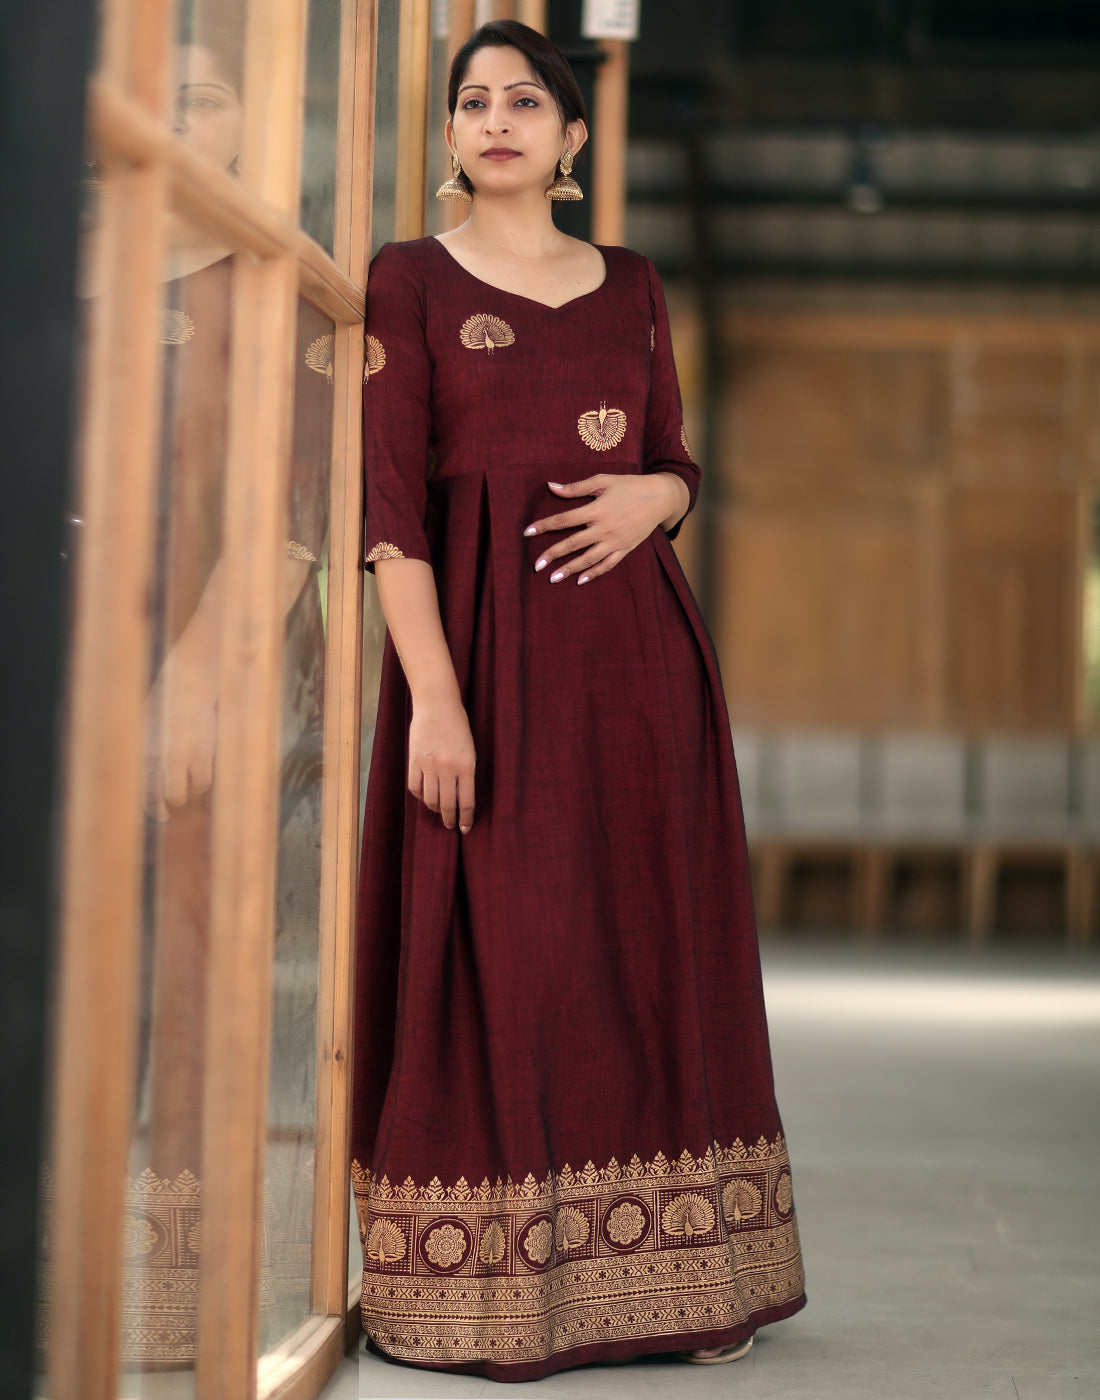 Ravishing Maroon Maxi Gown with Peacock Prints